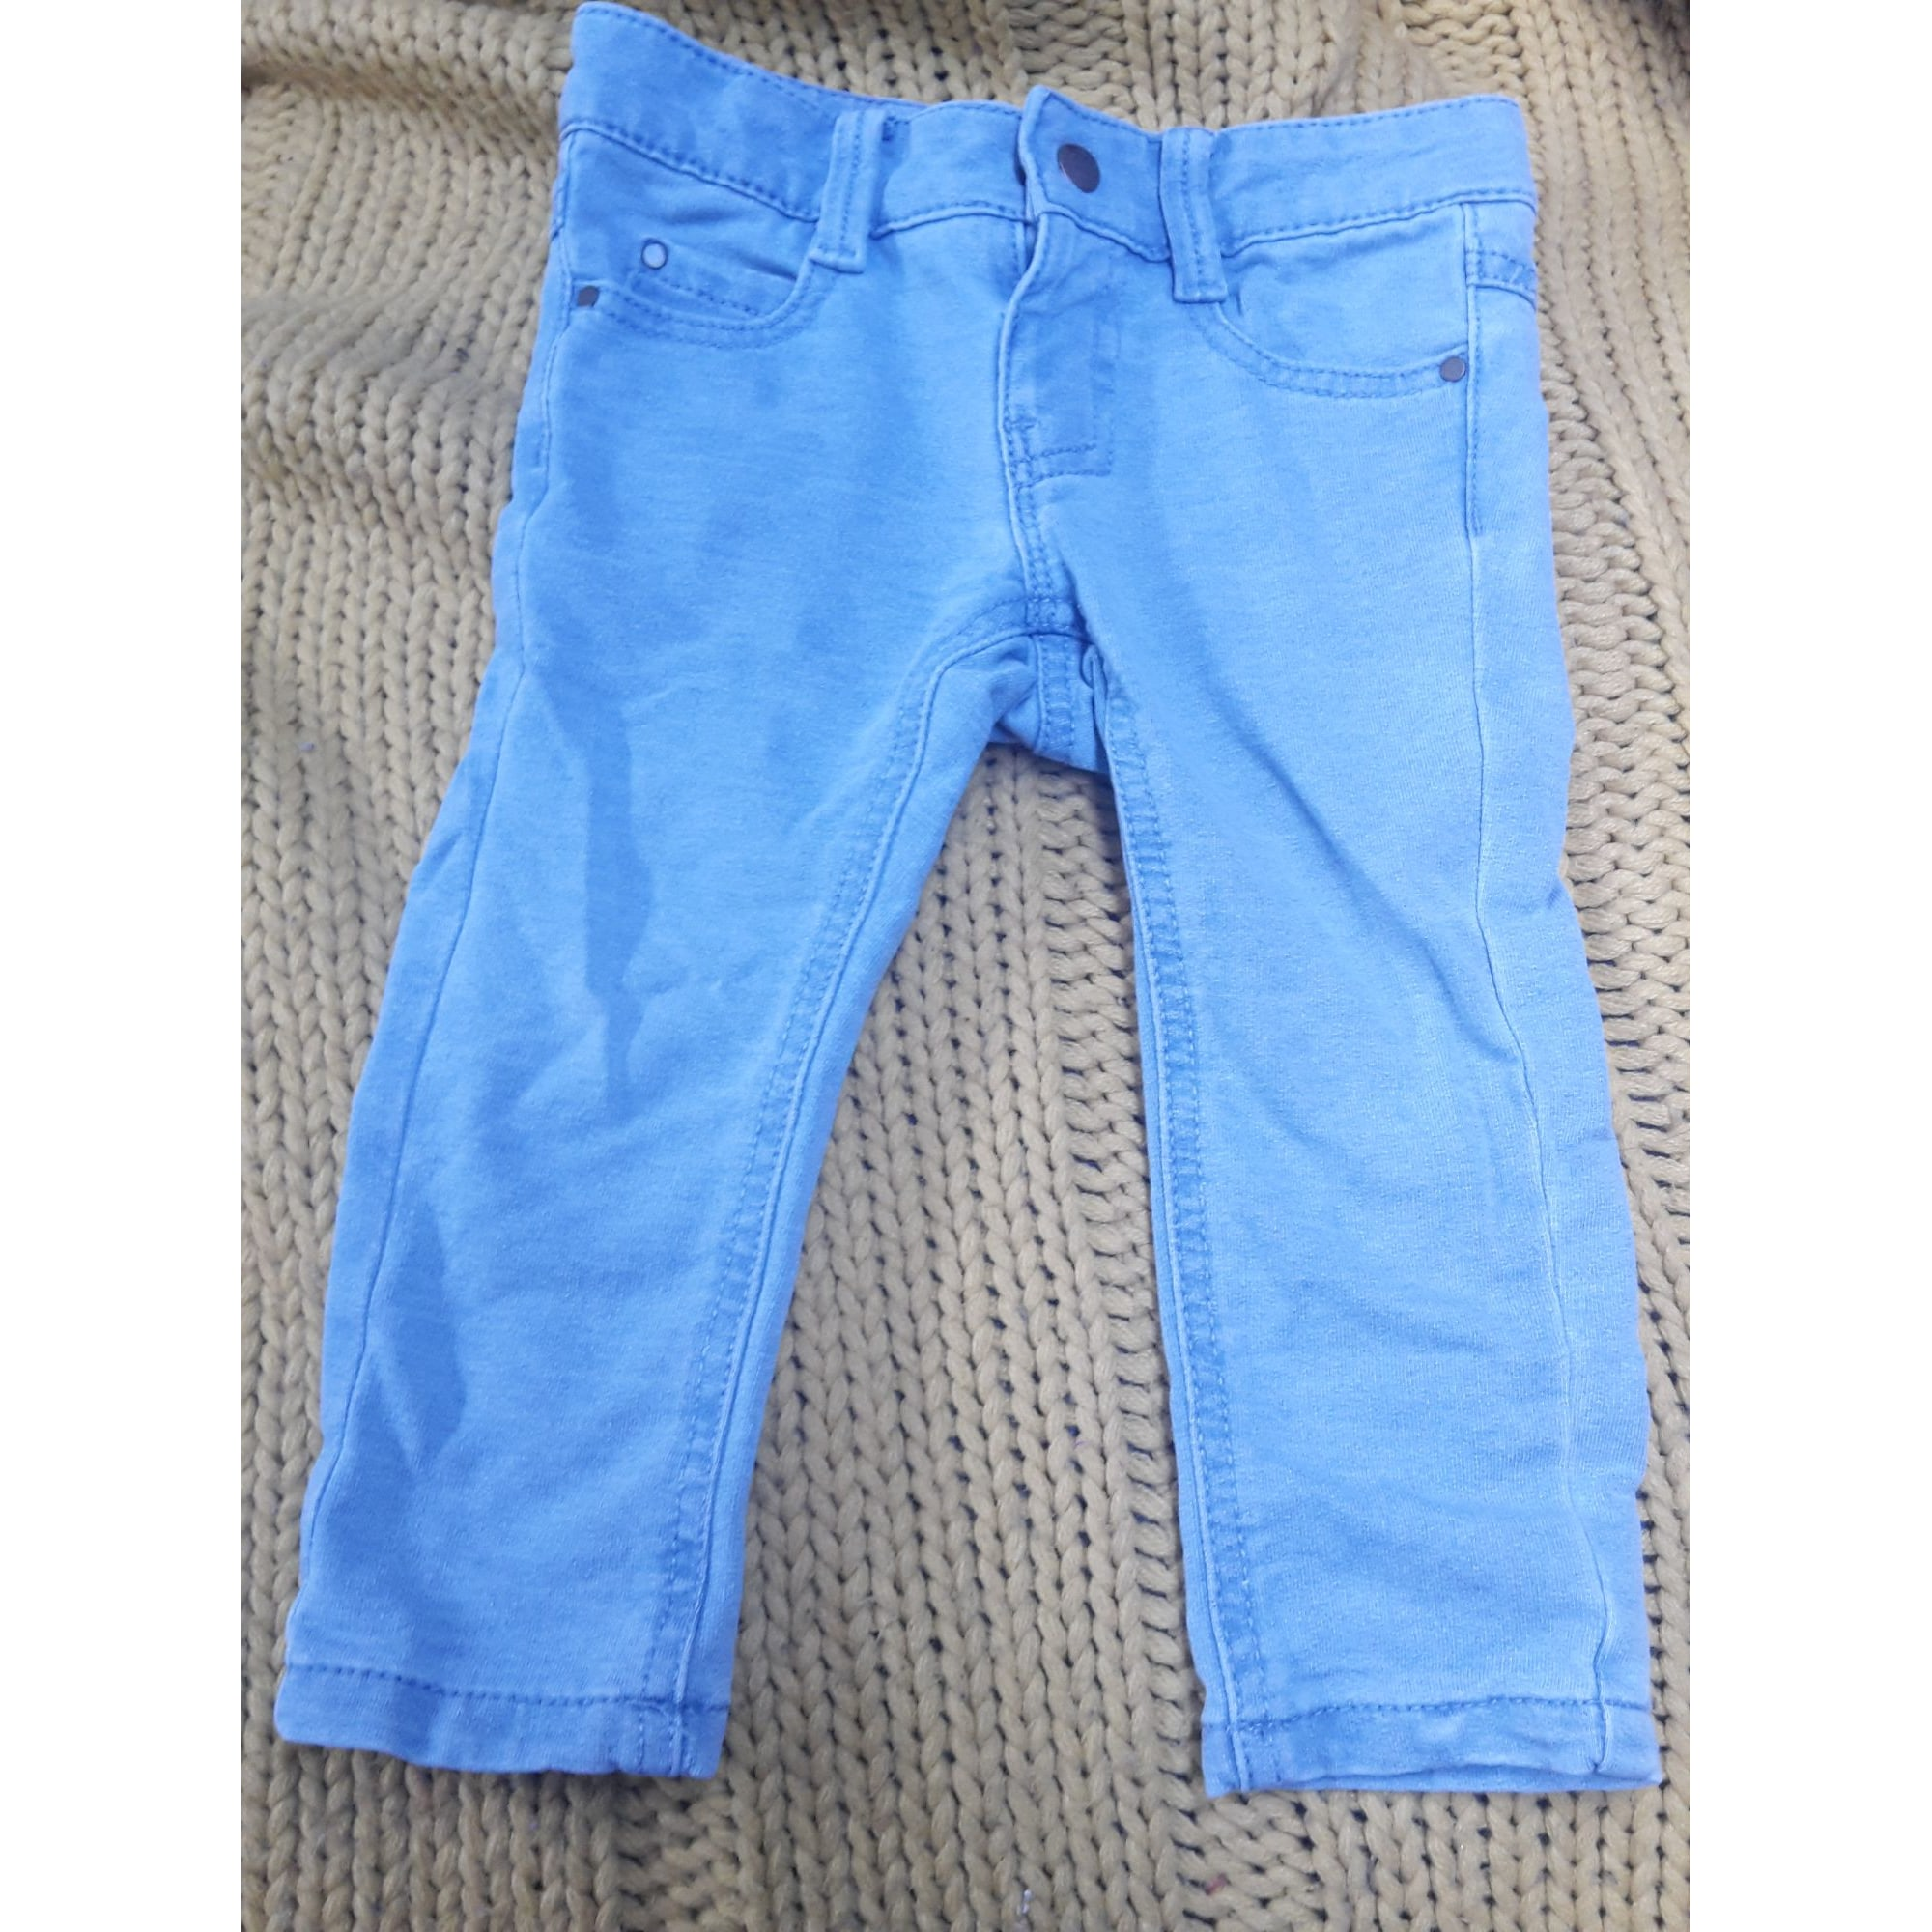 Pants BOUT'CHOU Blue, navy, turquoise